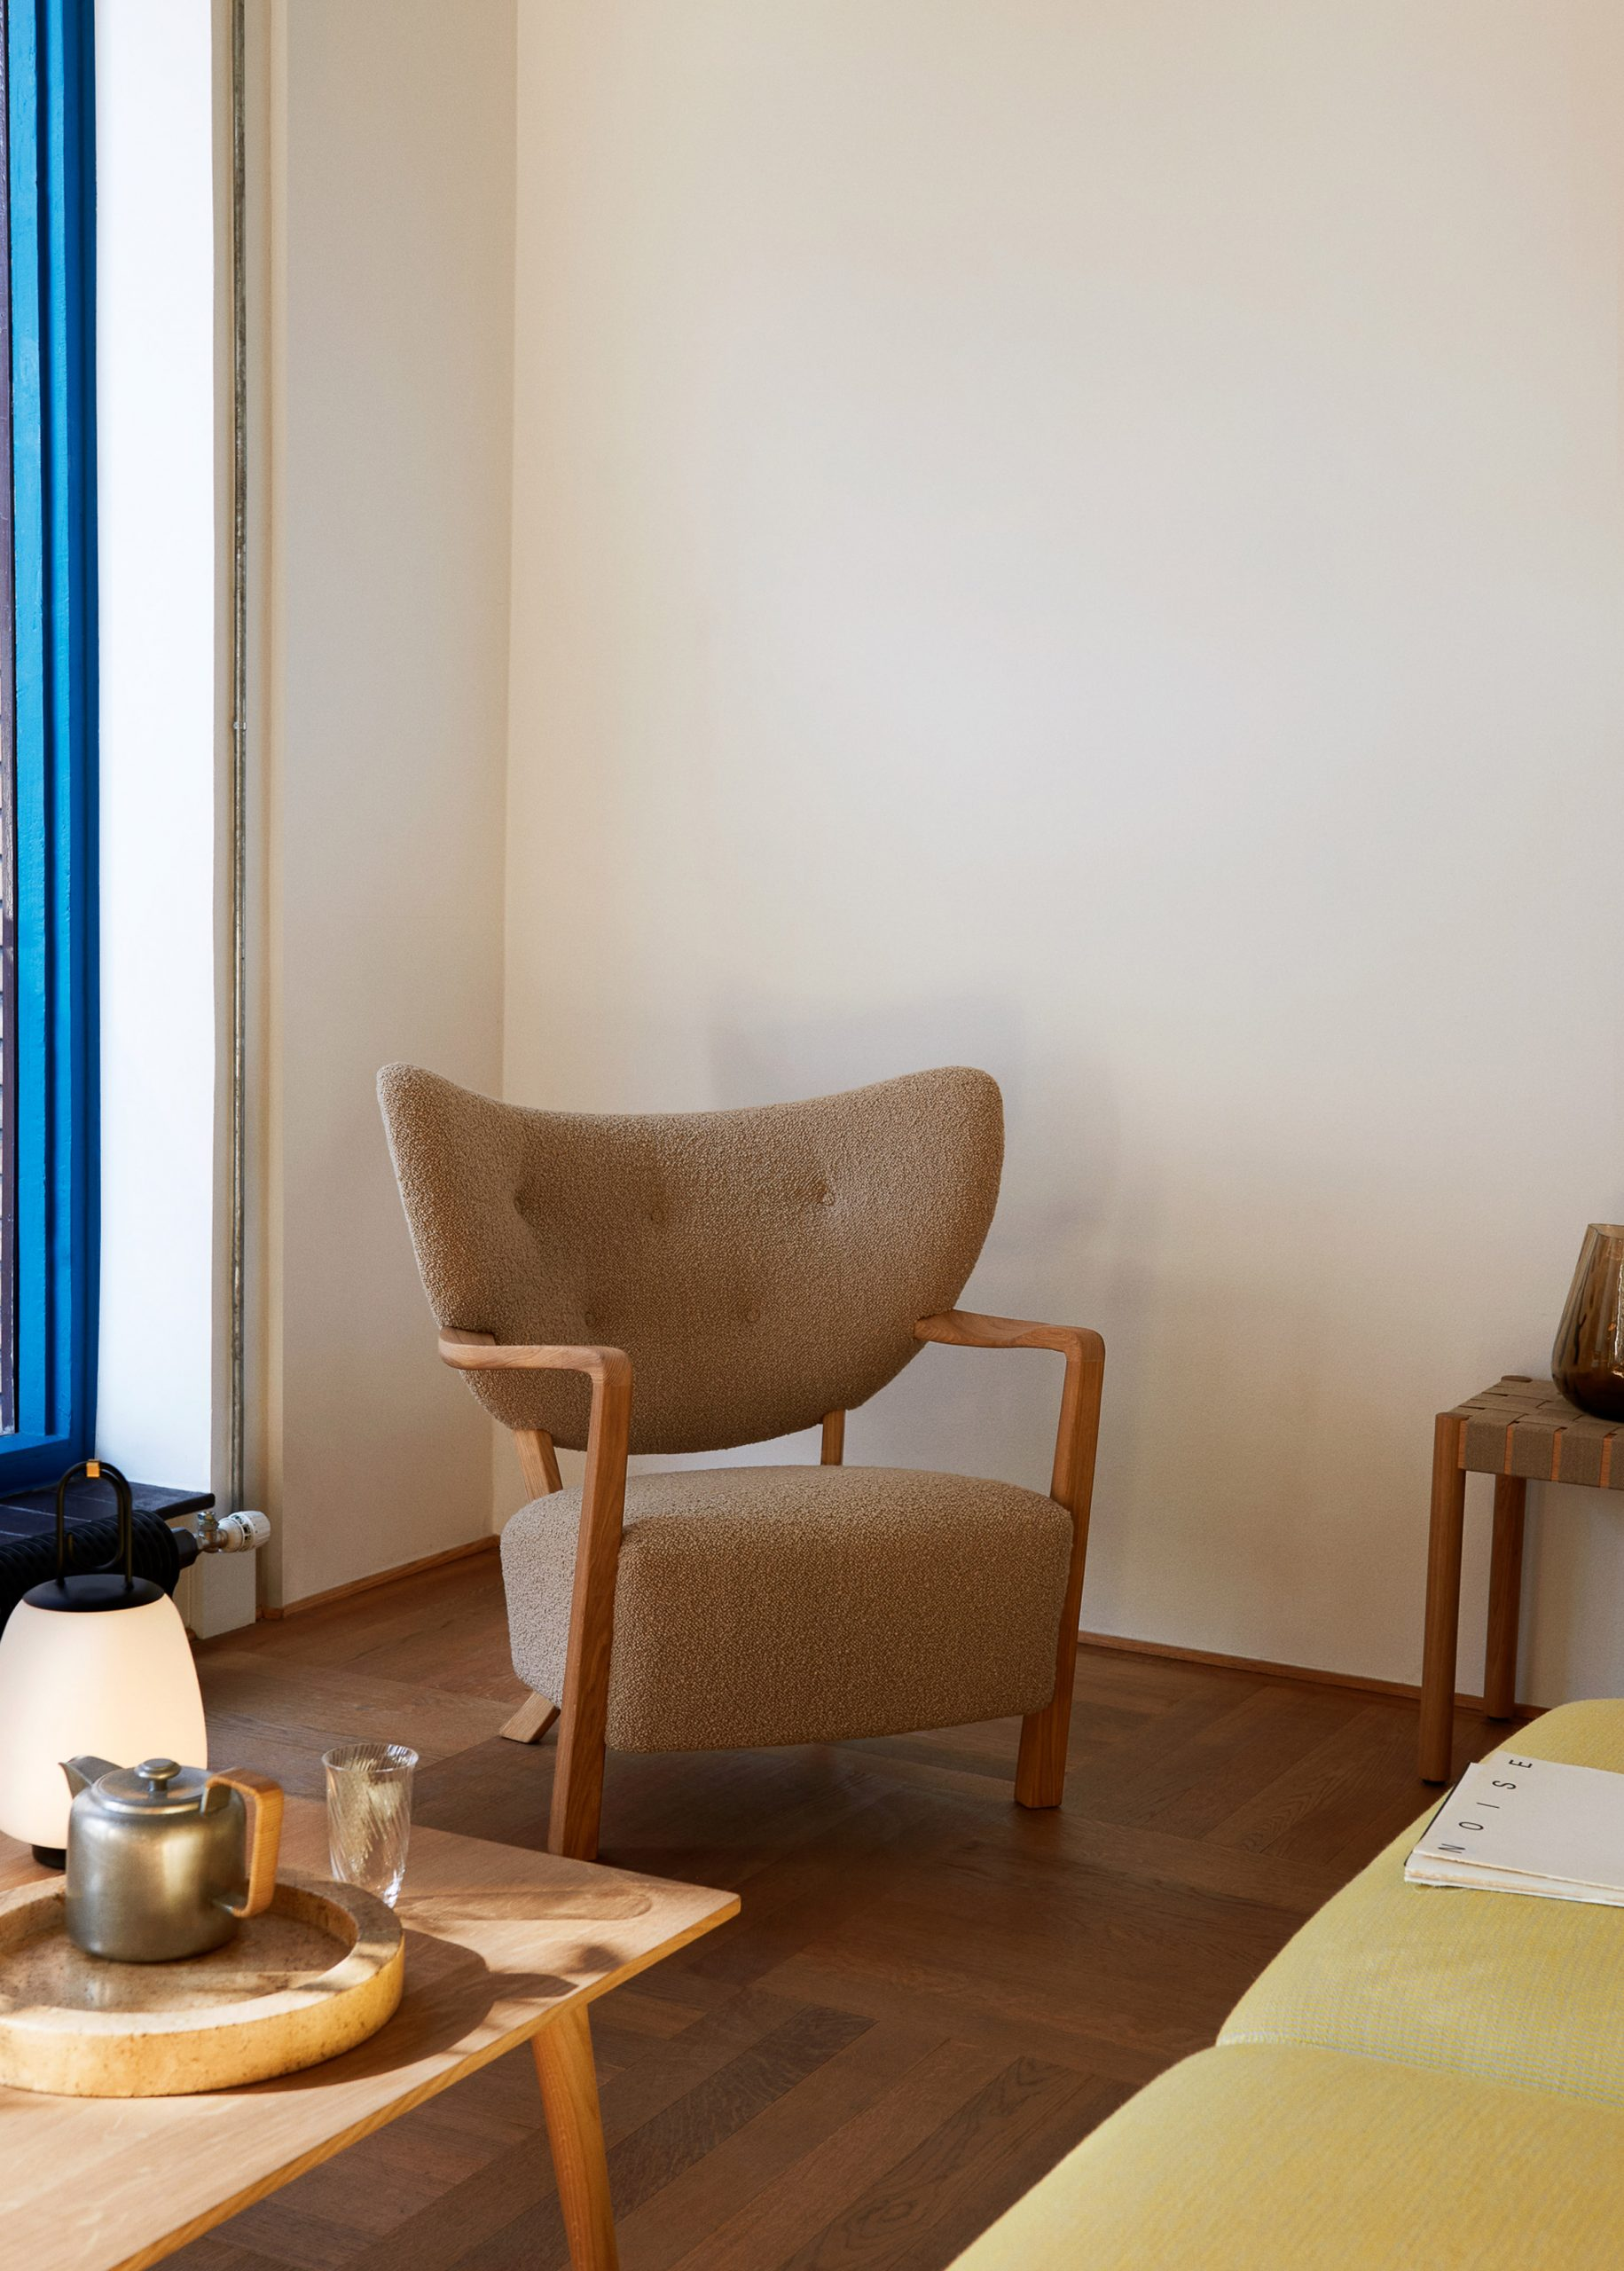 Wulff lounge chair in a living room